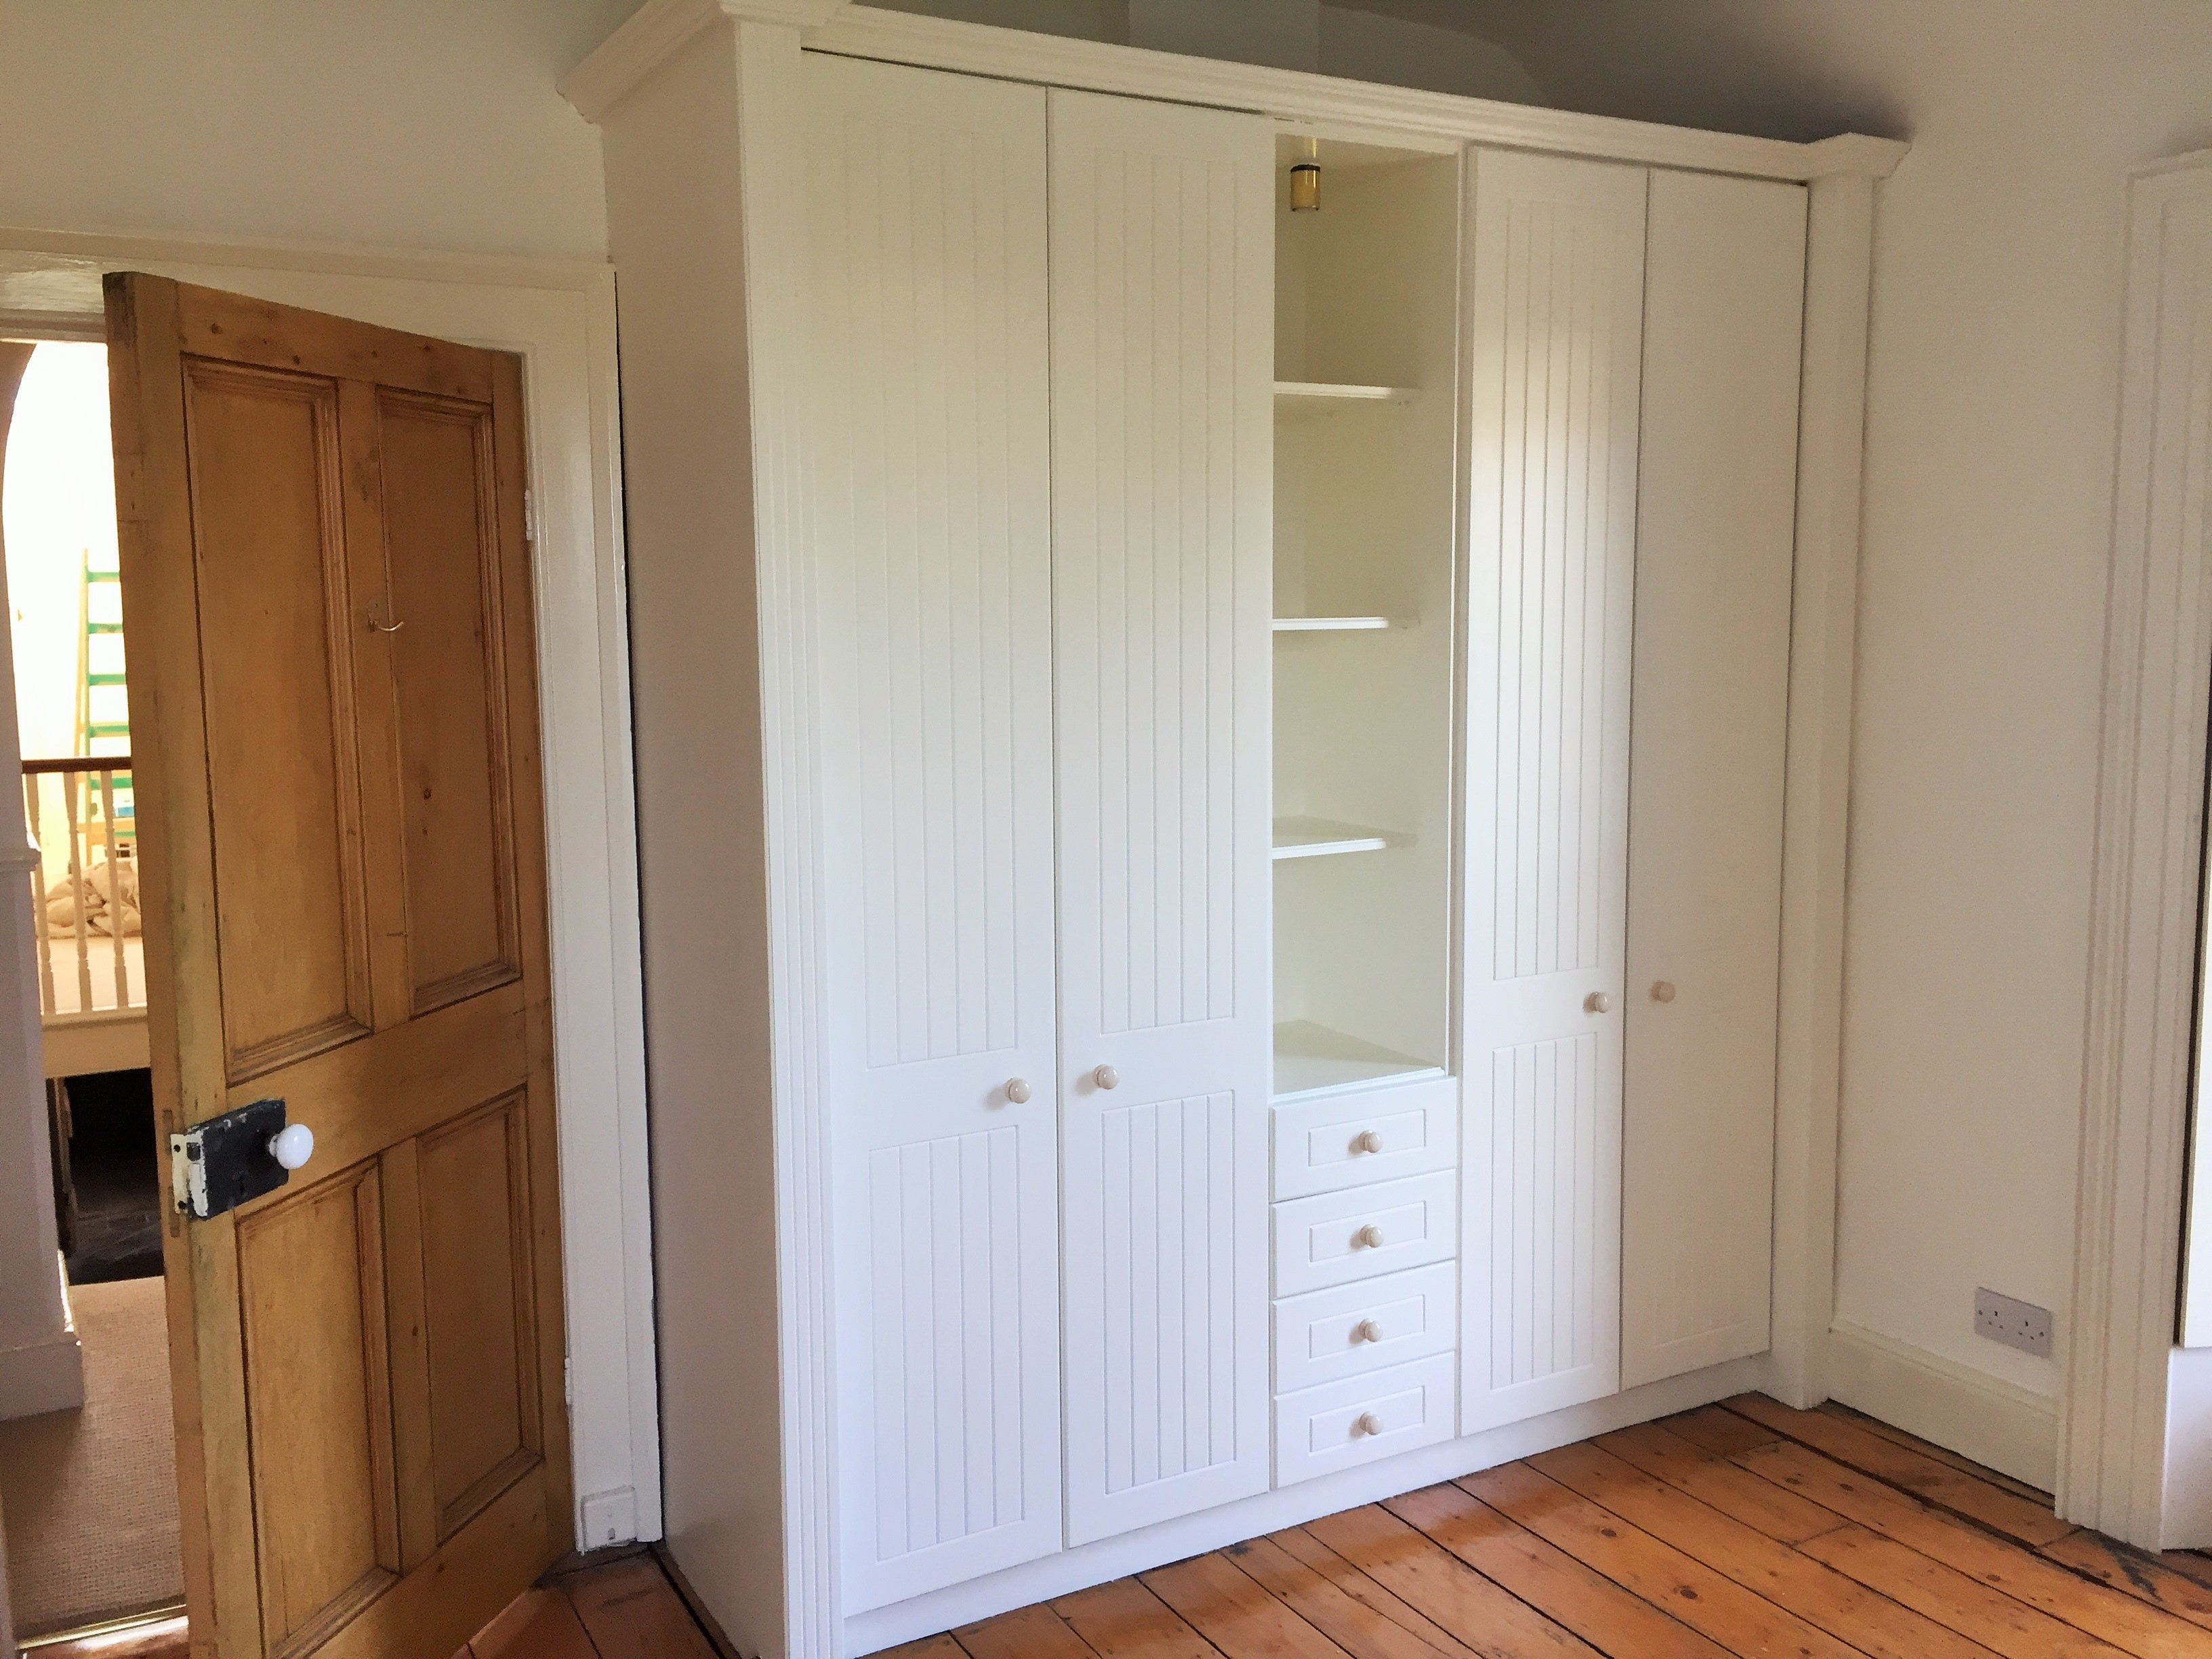 How to paint a laminated surfaces - after photo of a laminated wardrobe we painted in Sandycove by Impressions Painting and Decorating